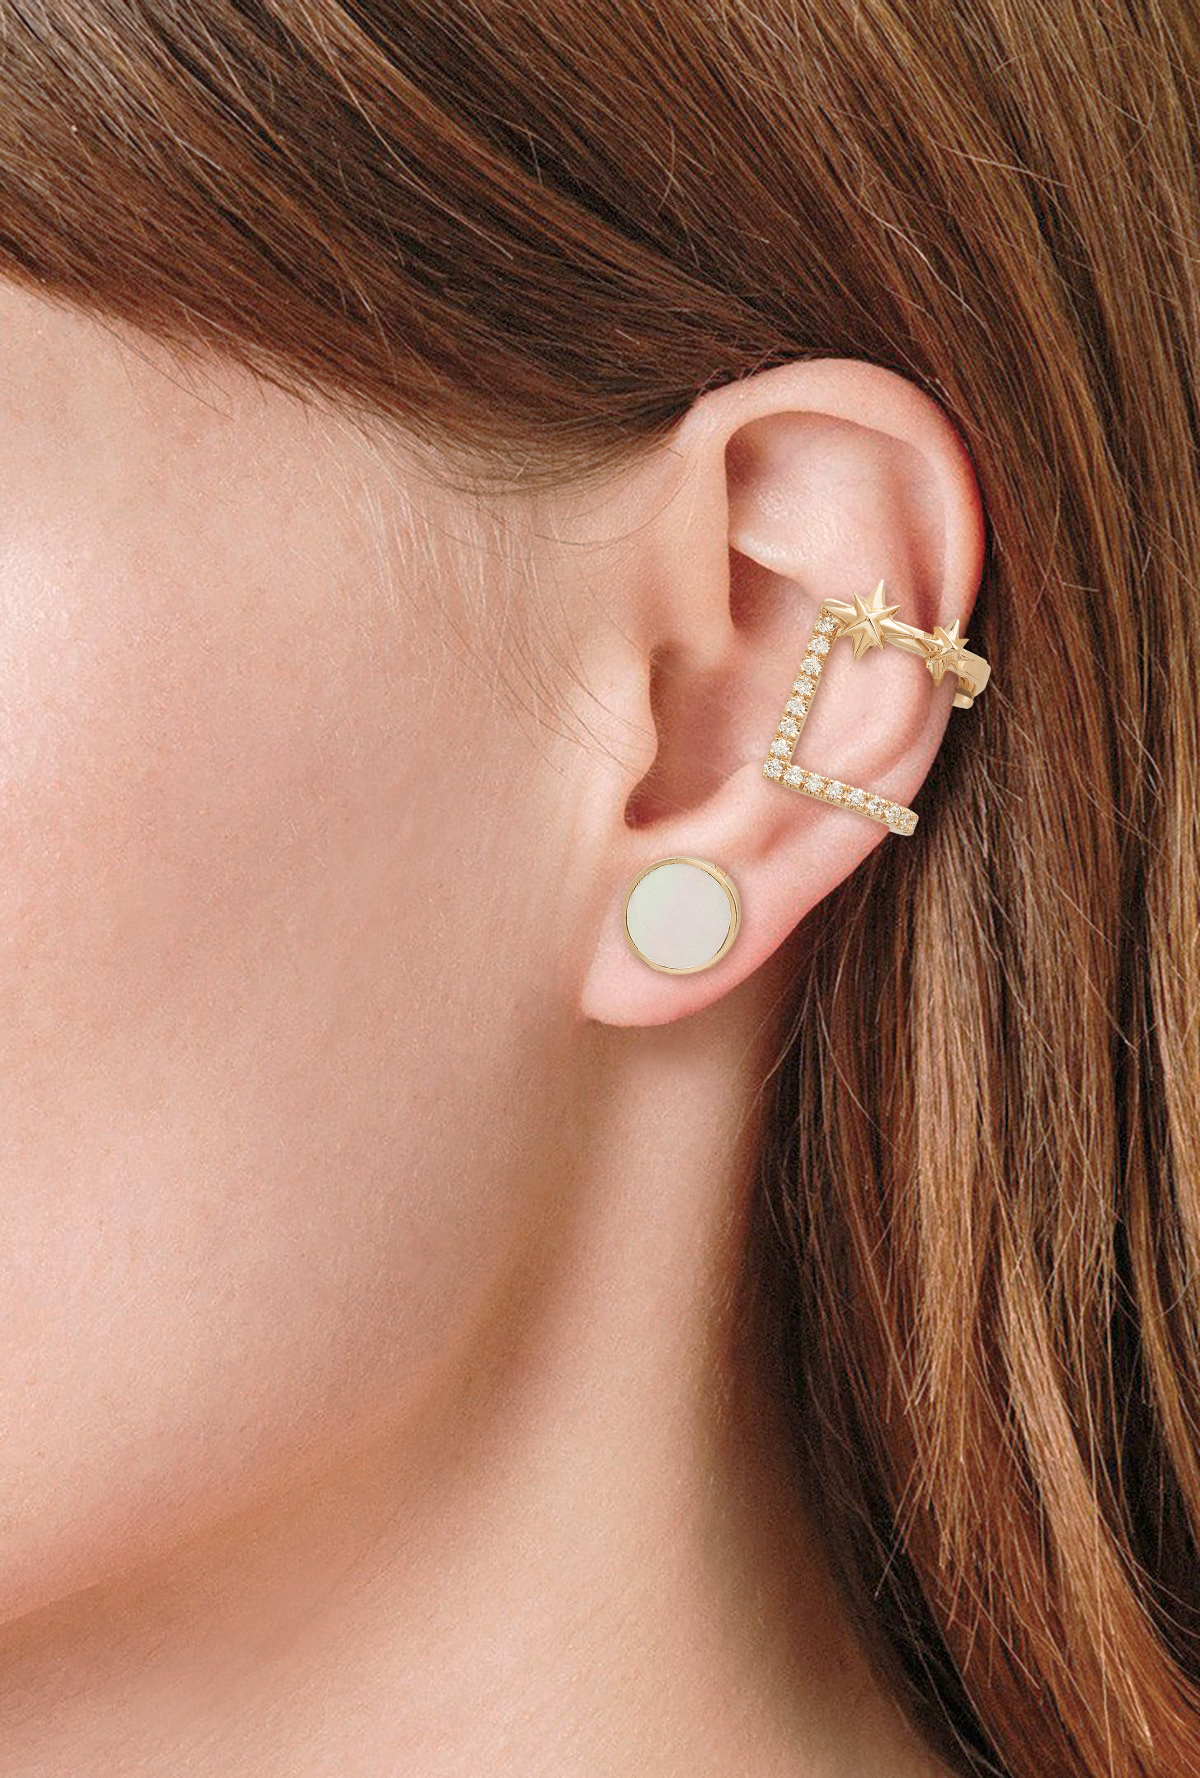 Bellatrix Ear Cuff - 18K Rose Gold by Aveen on curated-crowd.com